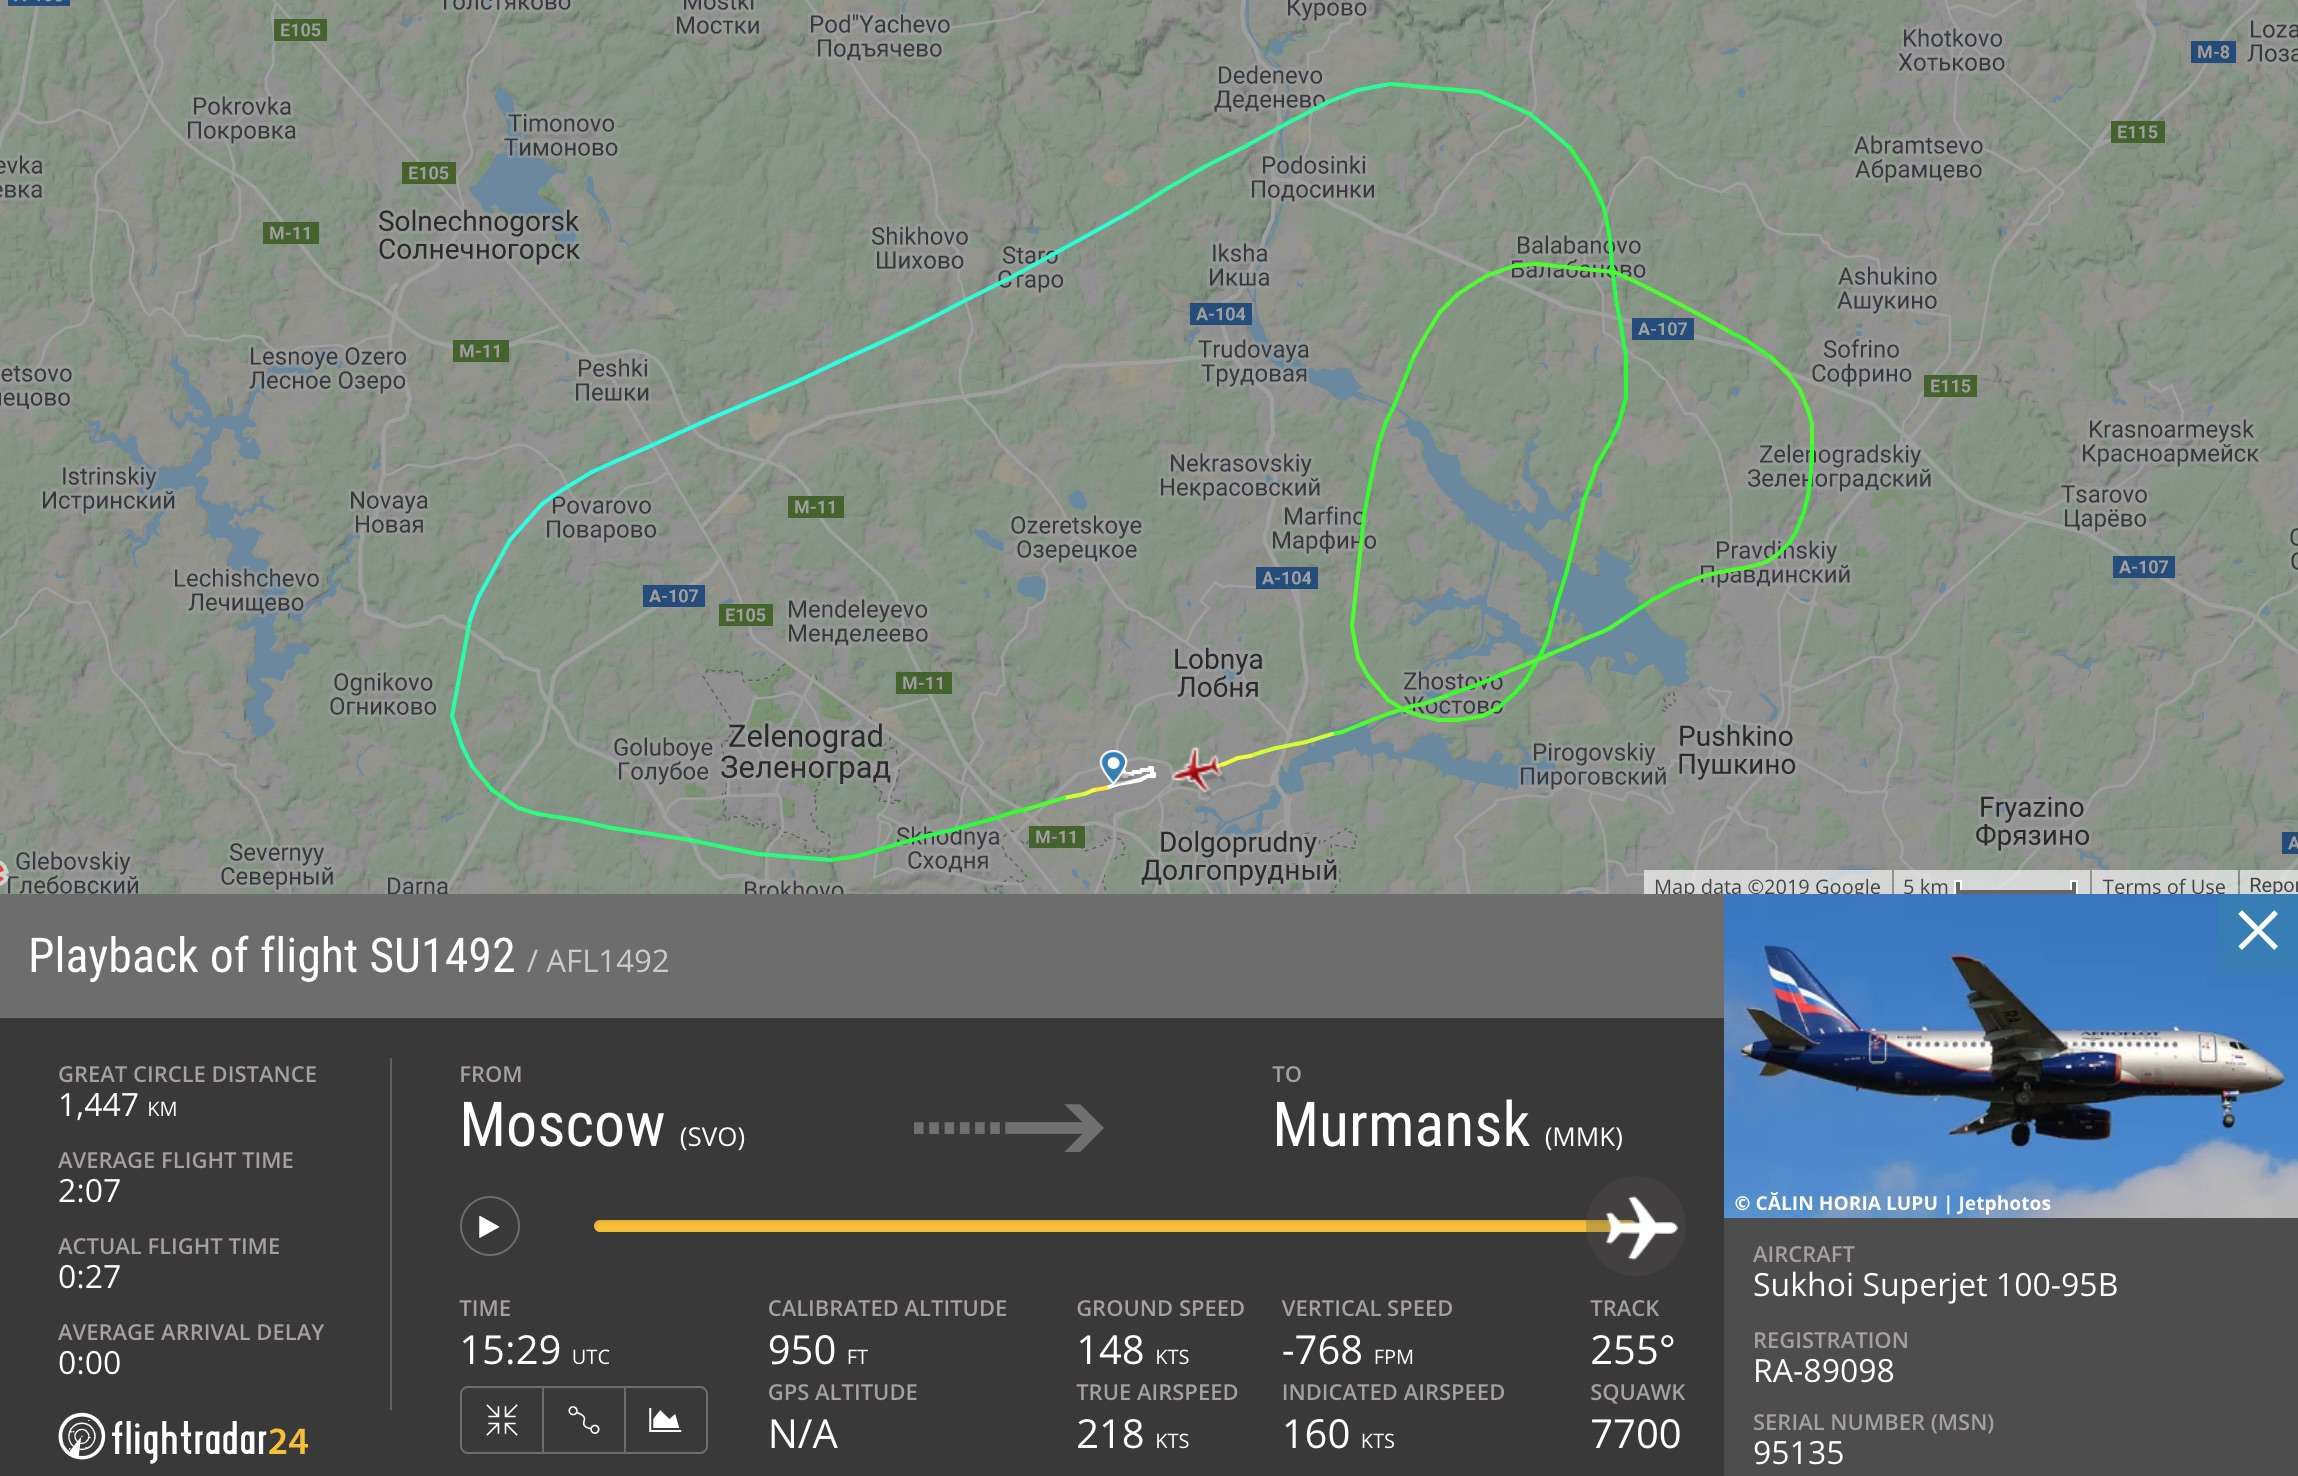 Flight path of Aeroflot 1492